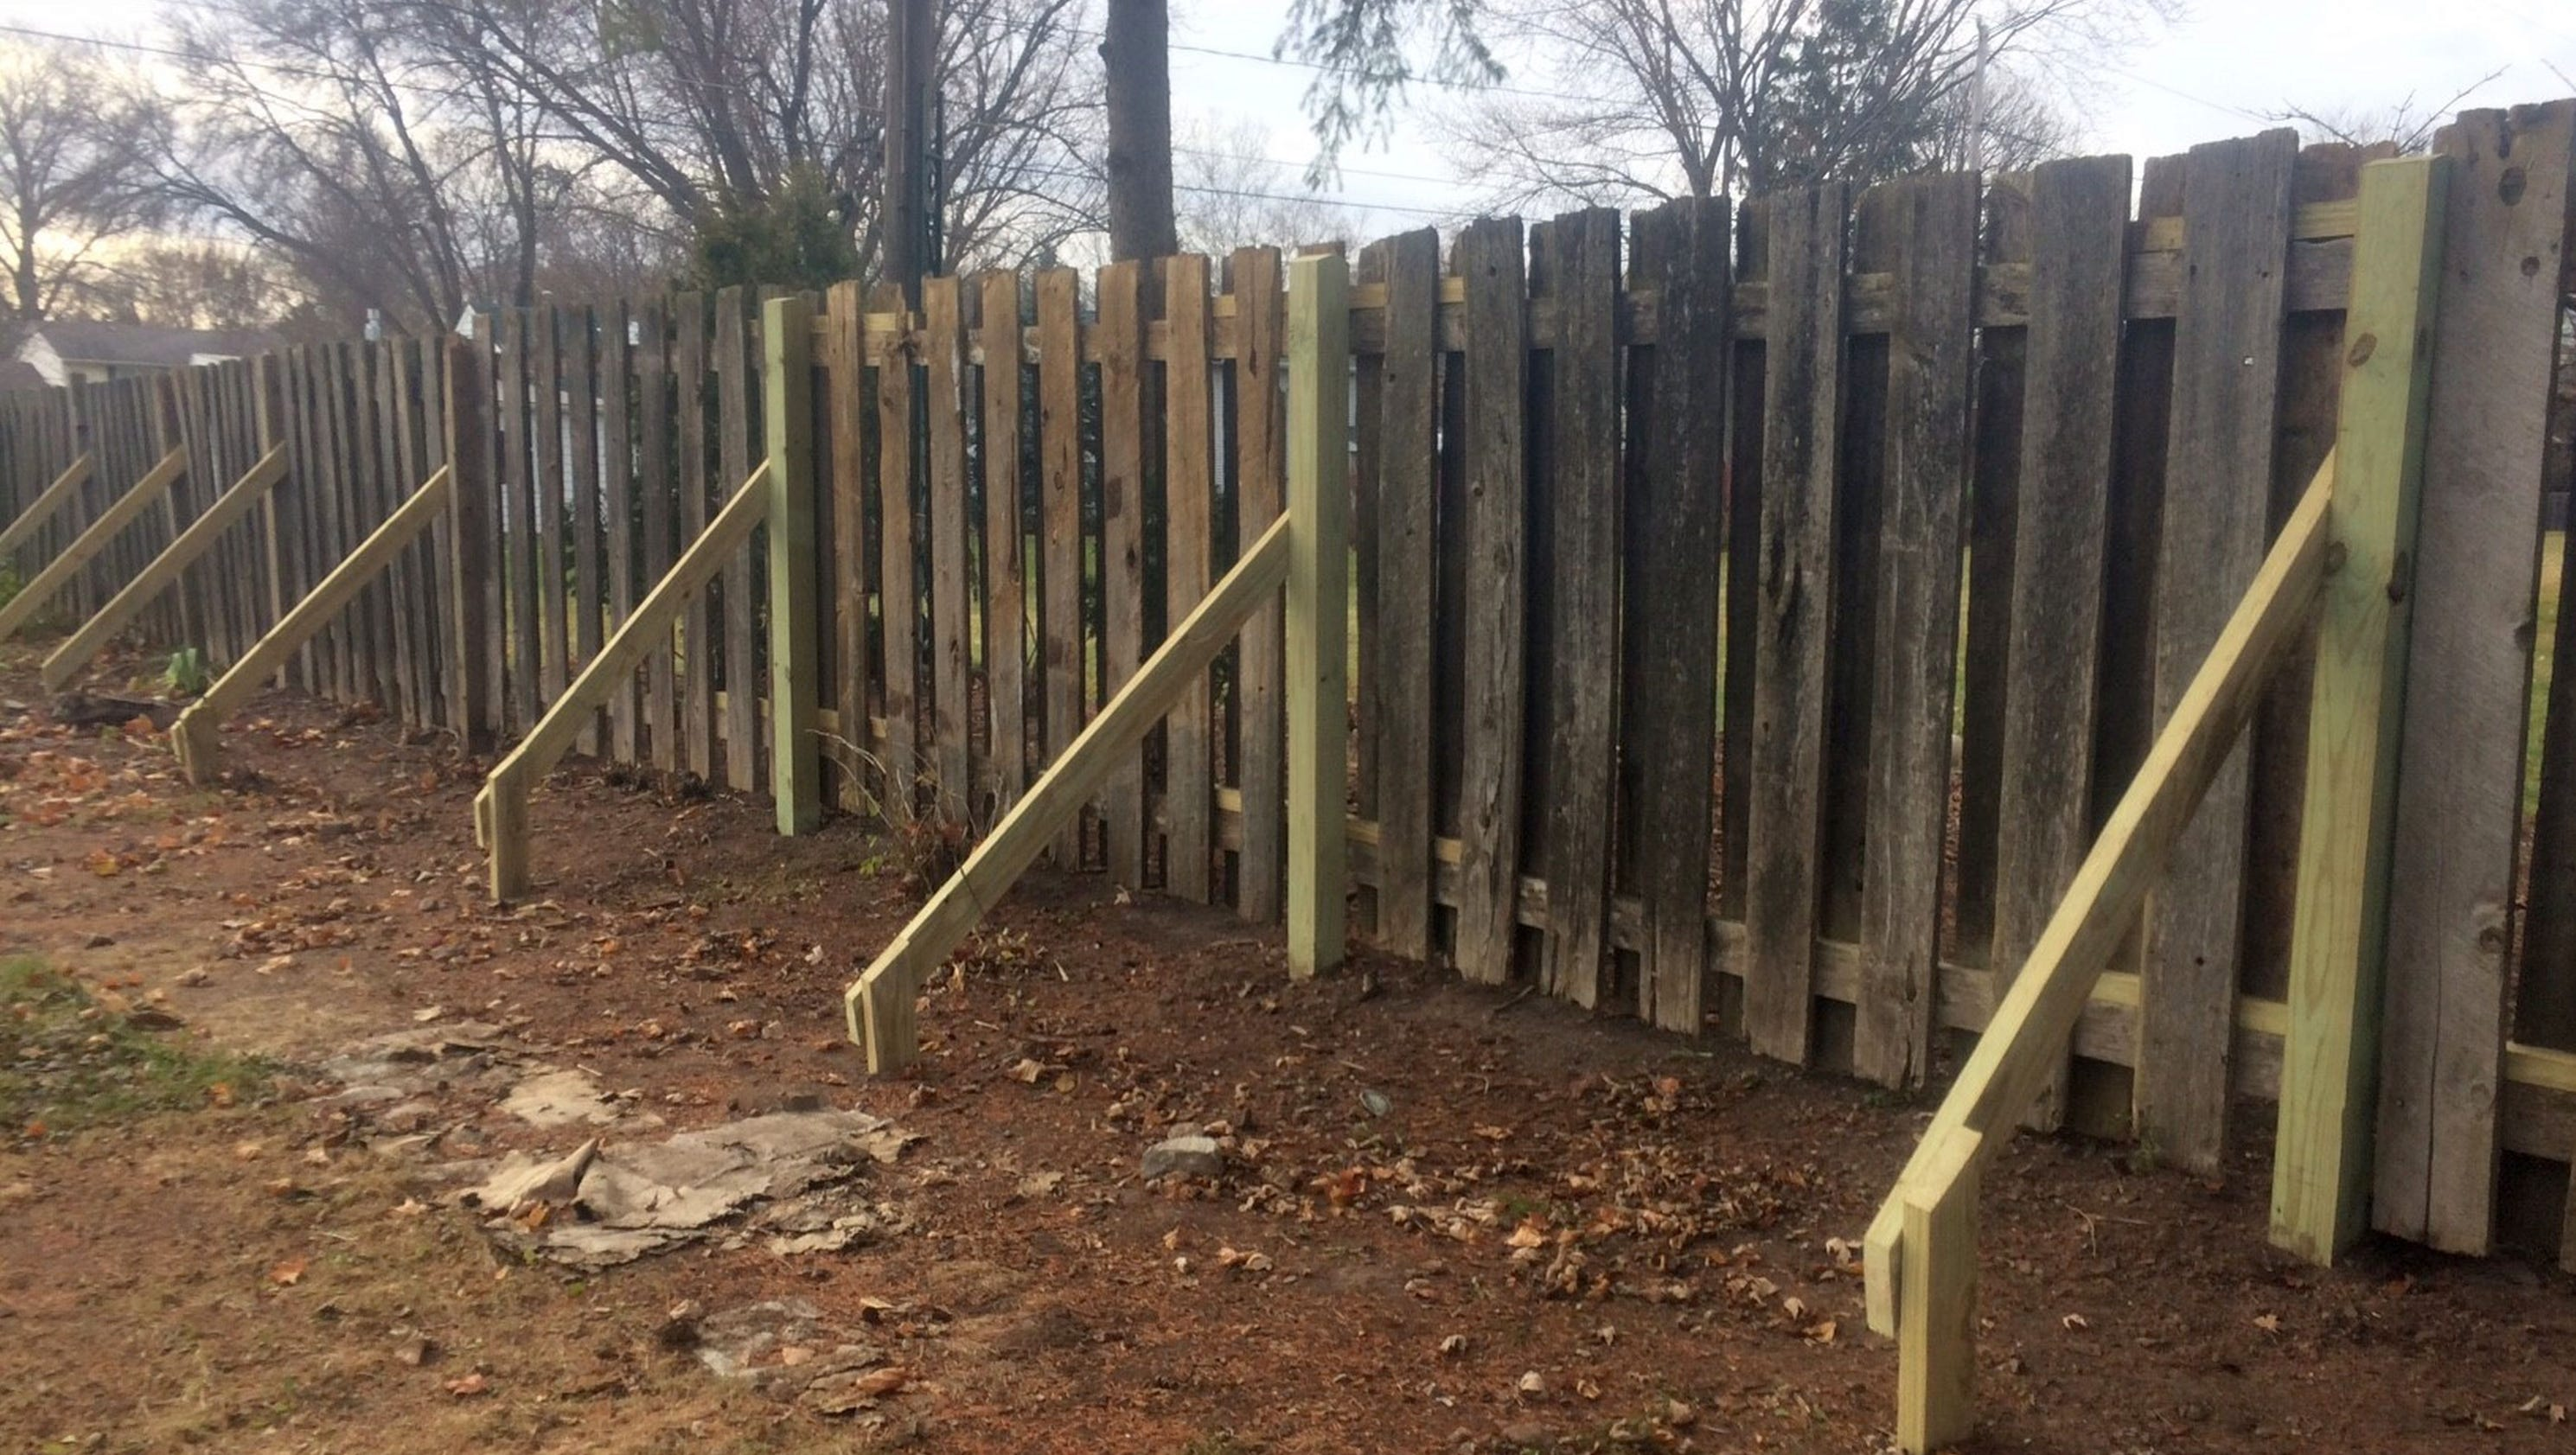 A woman fence and an act of generosity